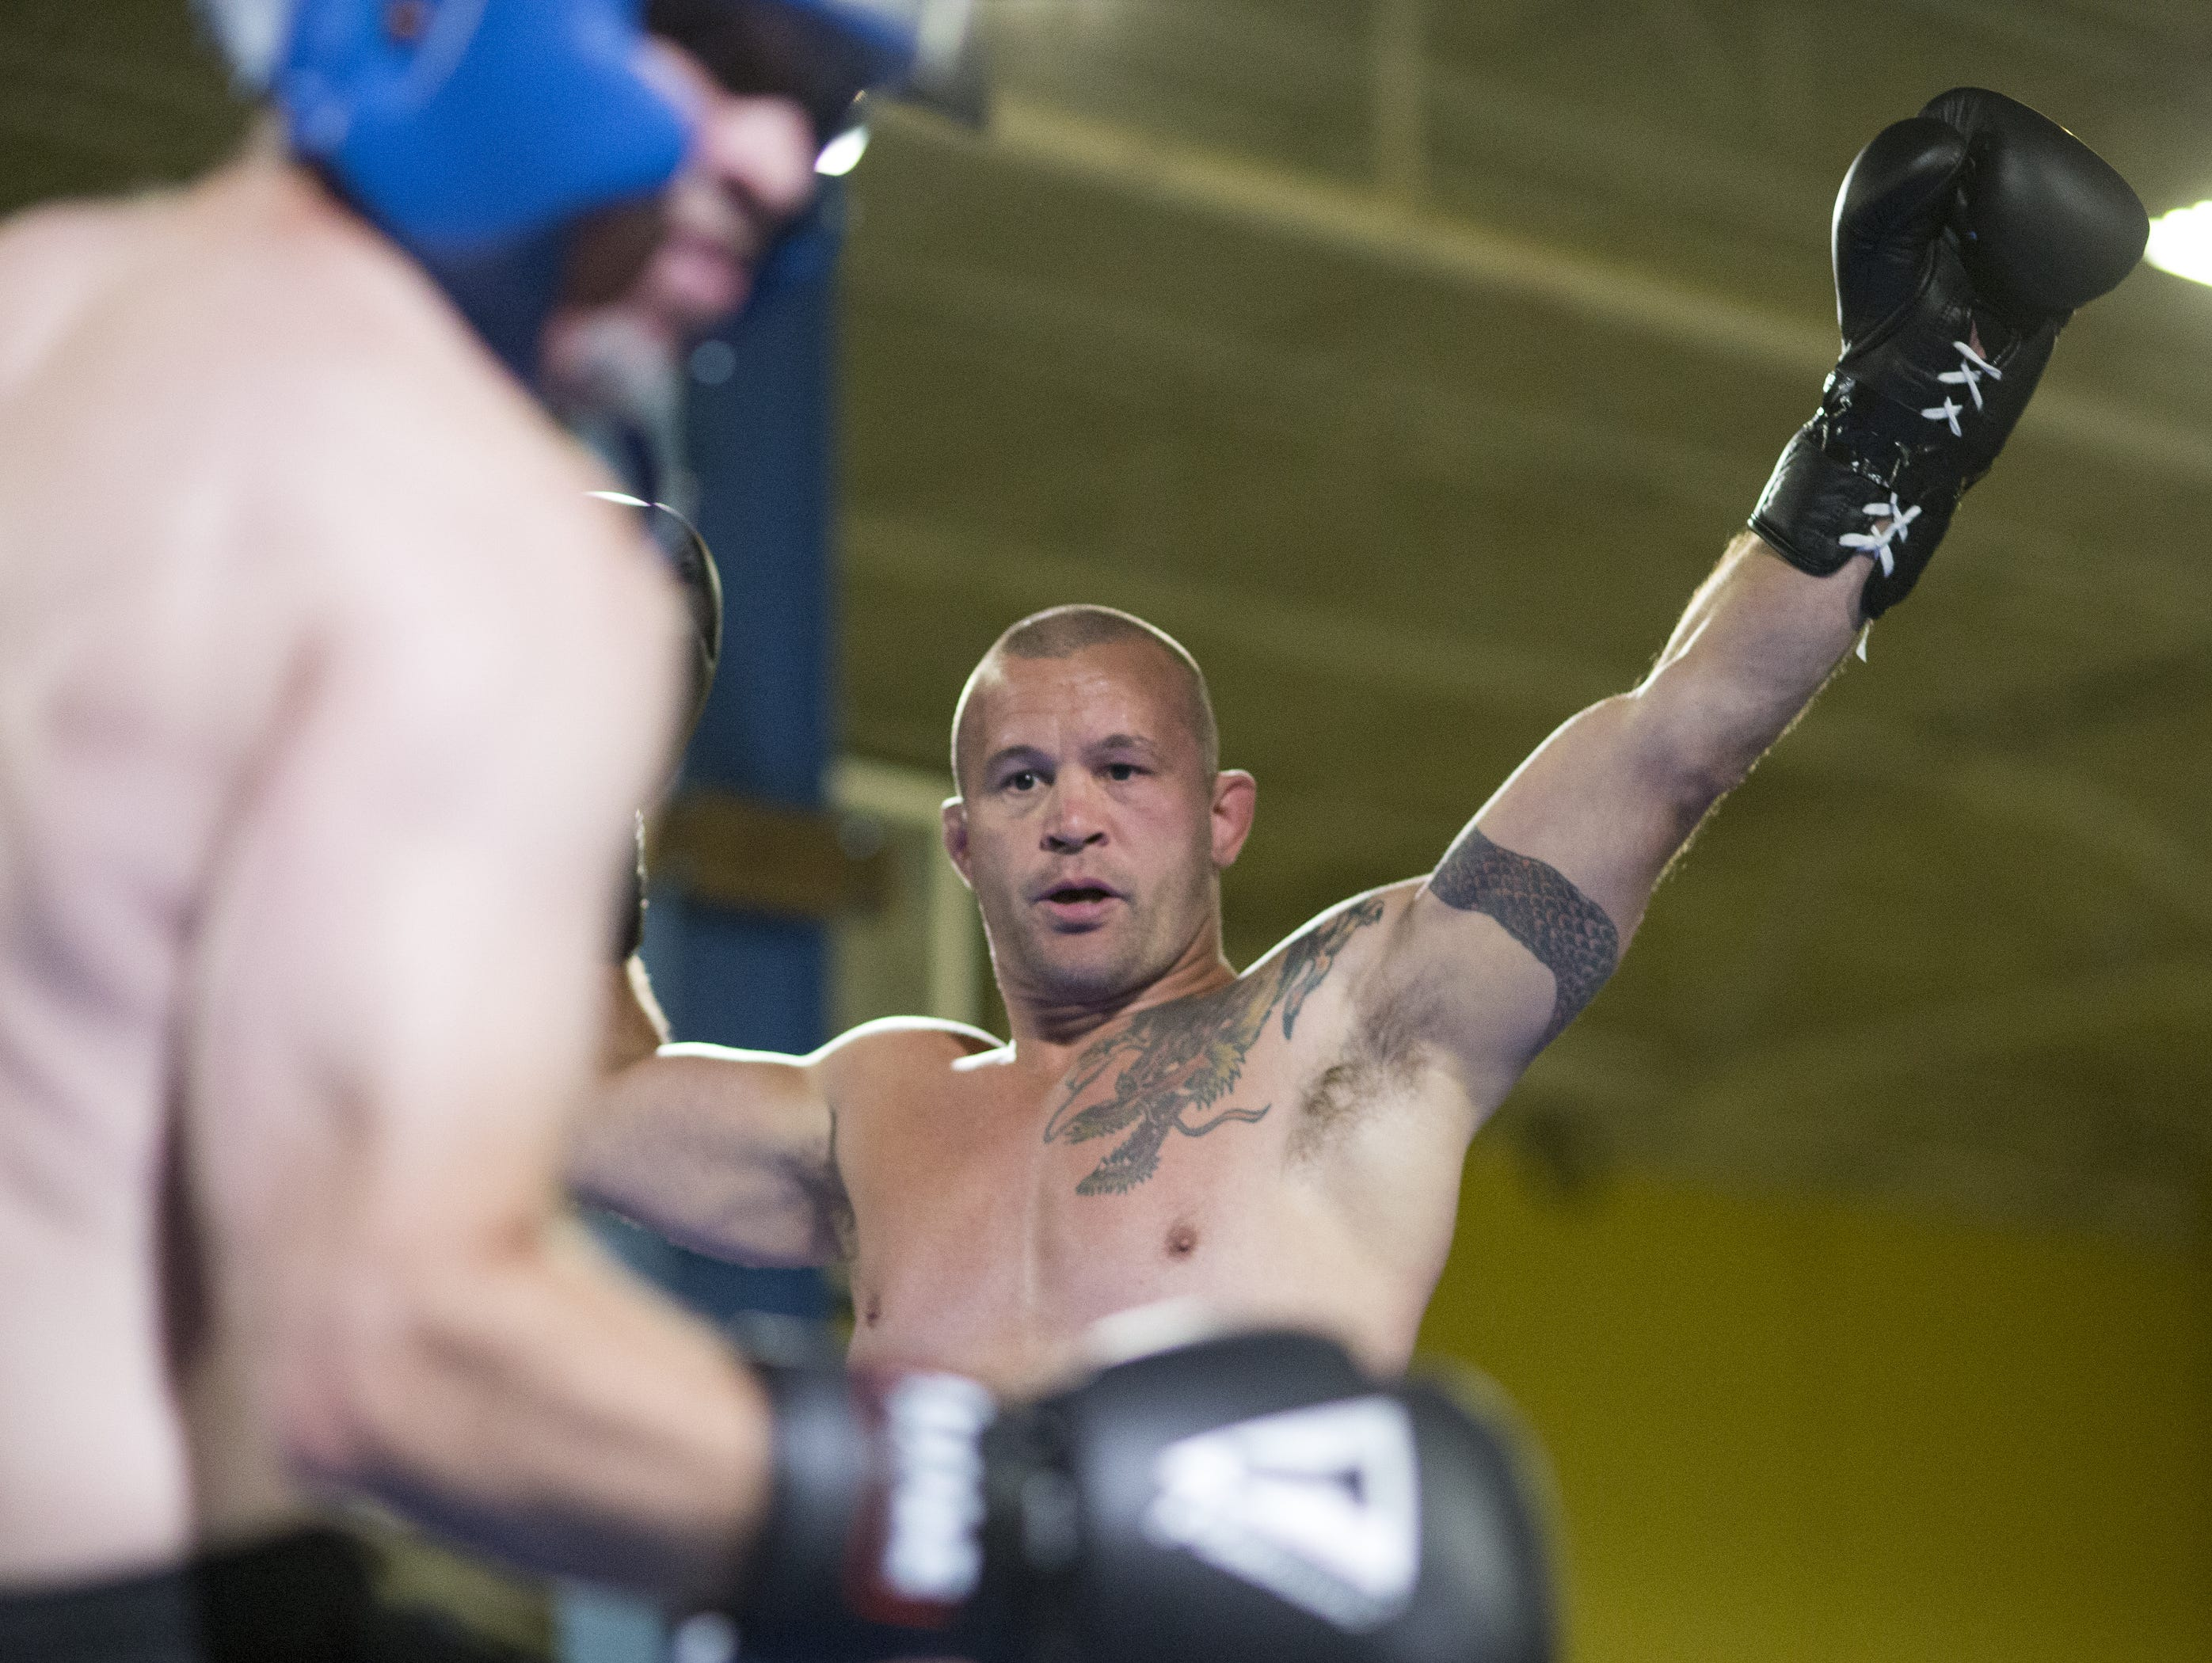 Former UFC fighter Chris Lytle taunted IndyStar columnist Gregg Doyel on Aug. 7, 2015, as they mixed it up during a charity event for Rock Steady Boxing, Indianapolis.